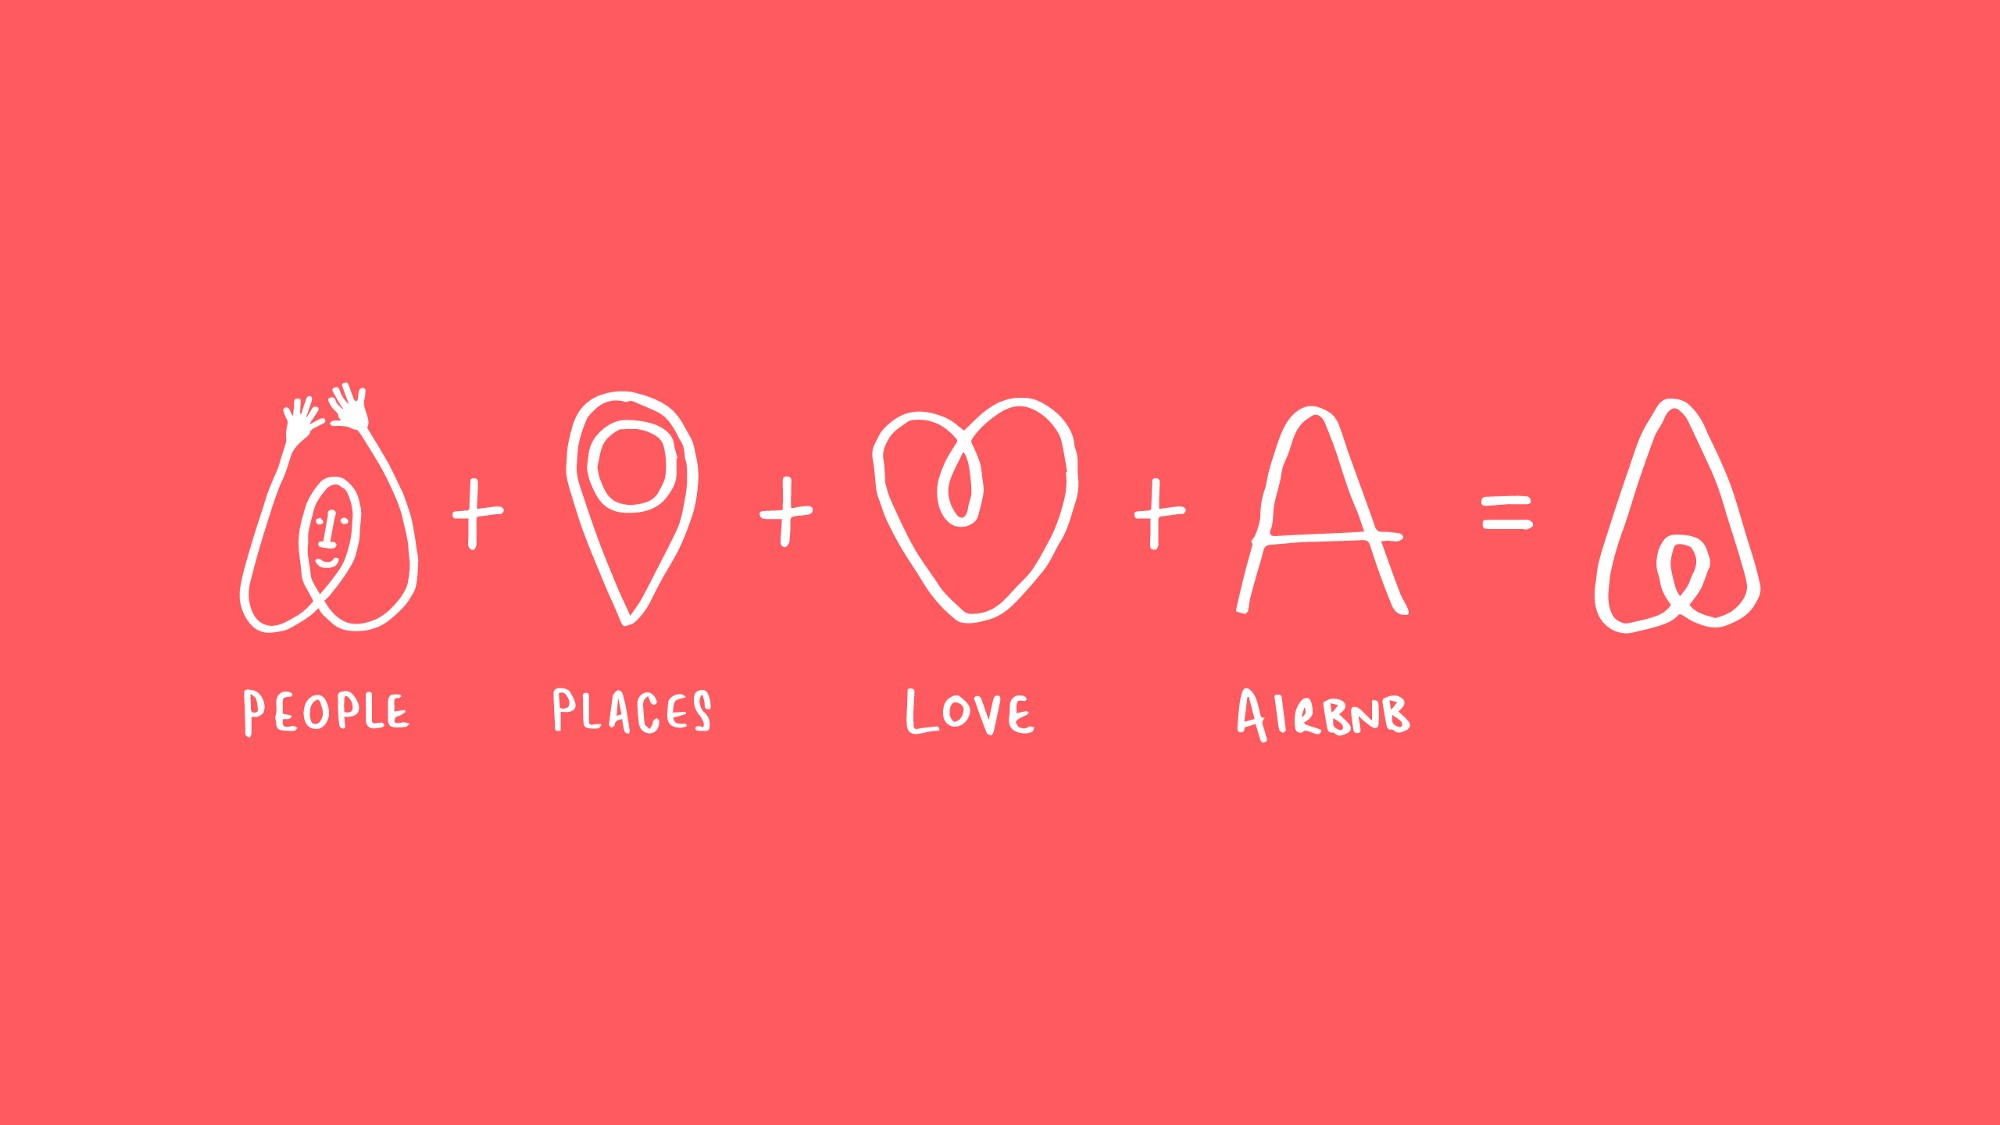 airbnb brand values